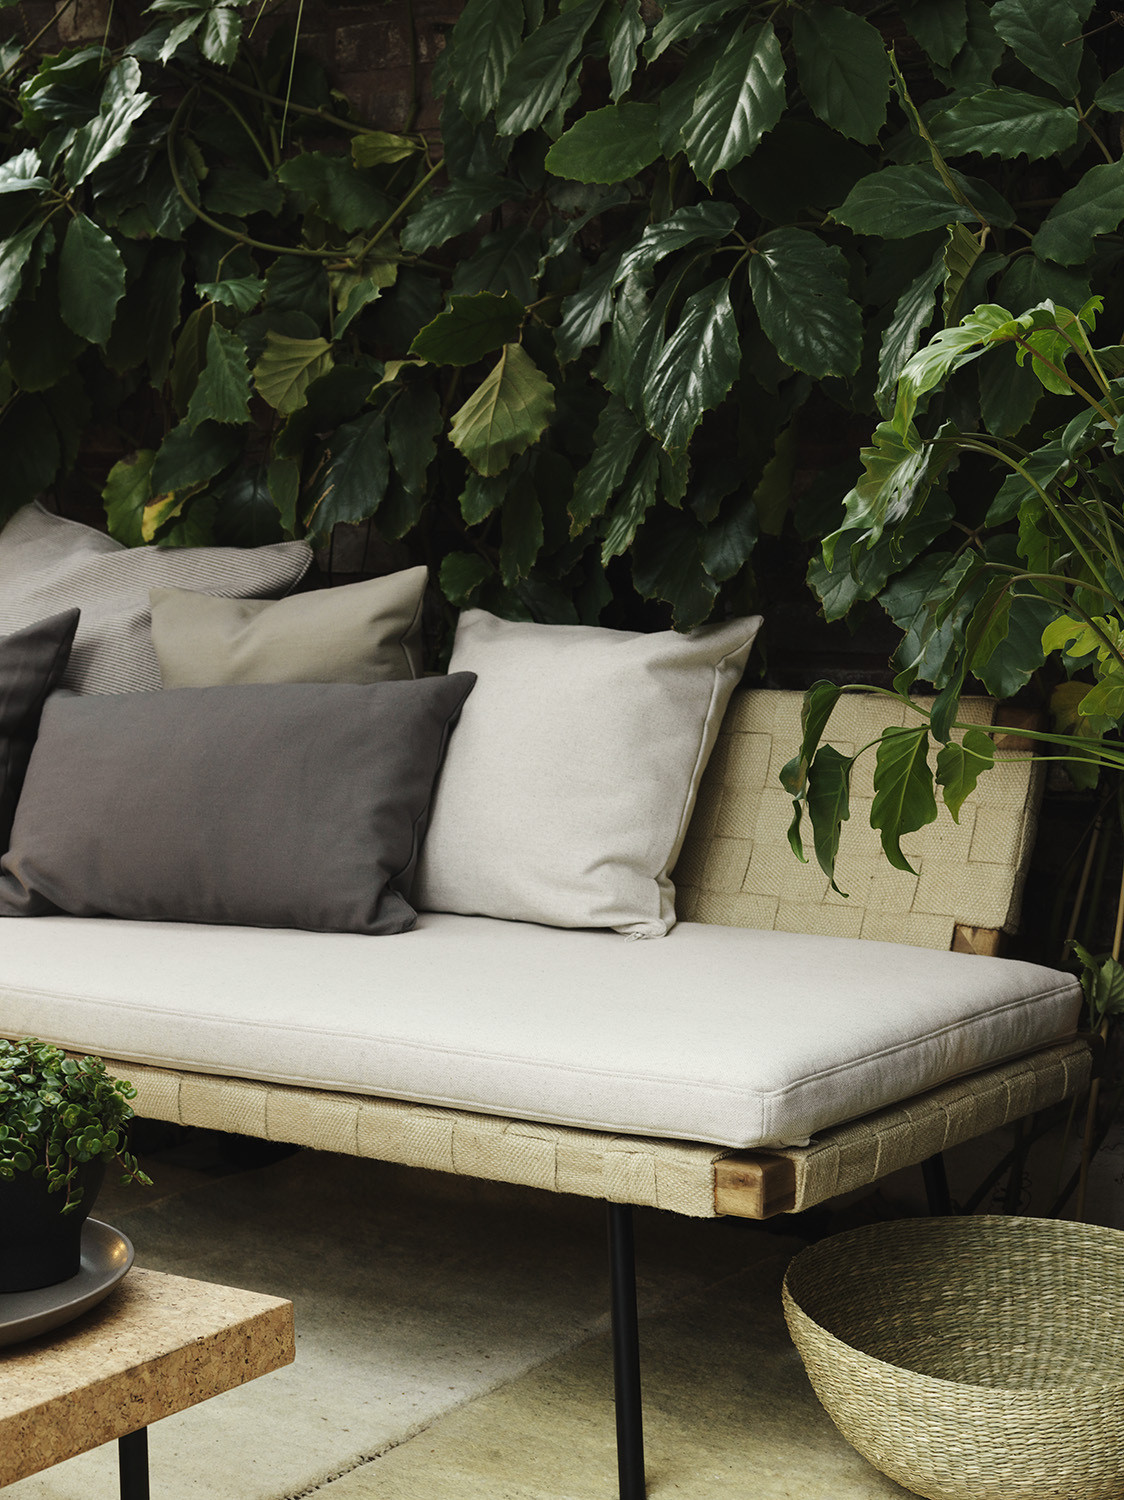 Sneak Peek: Ilse Crawford x Ikea